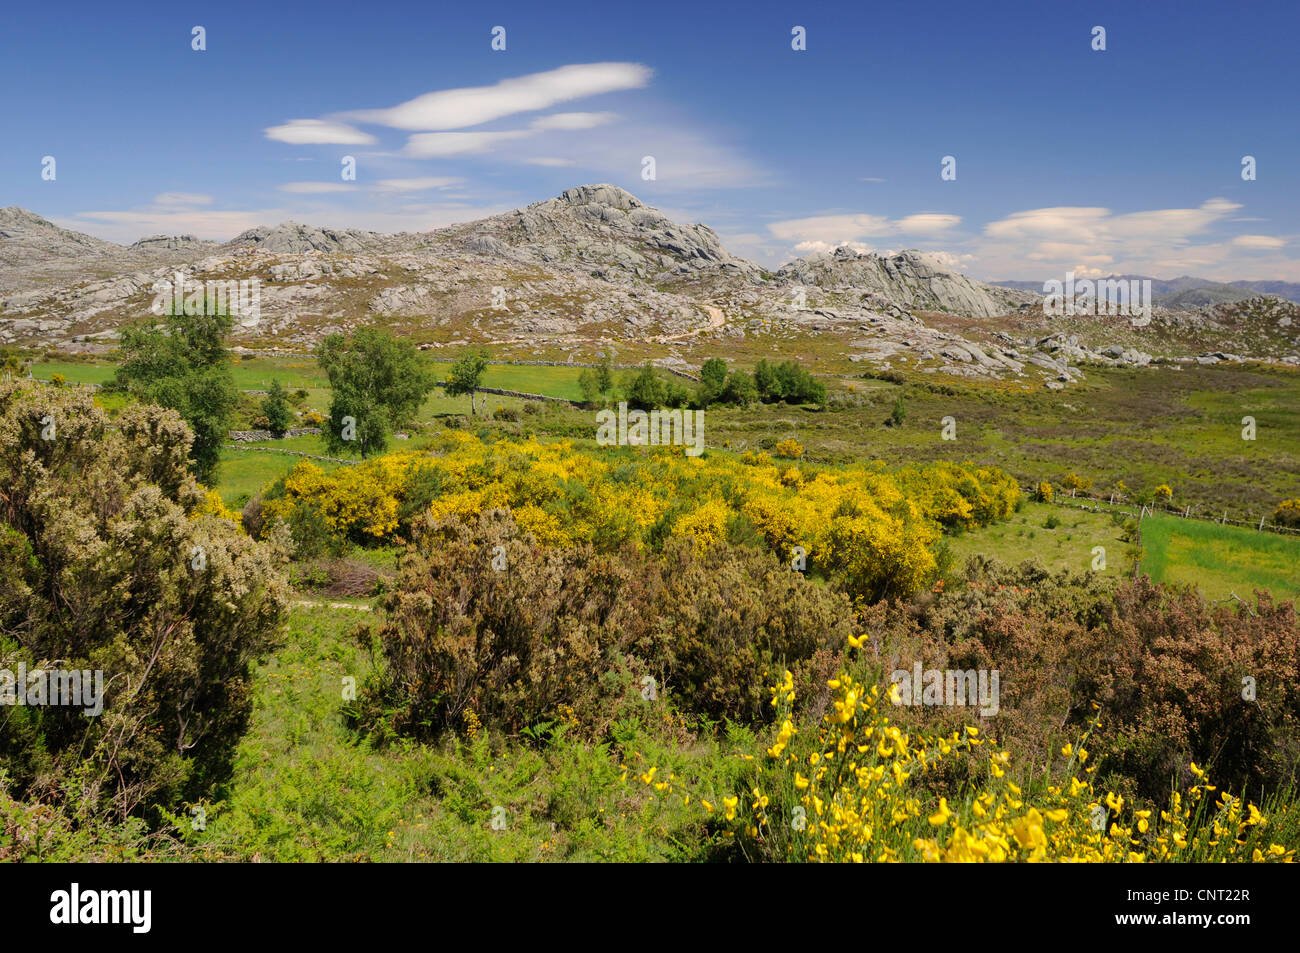 mountain landscape at the edge of Serra Geres National Park in Portugal, Portugal, Nationalpark Serra Geres - Stock Image